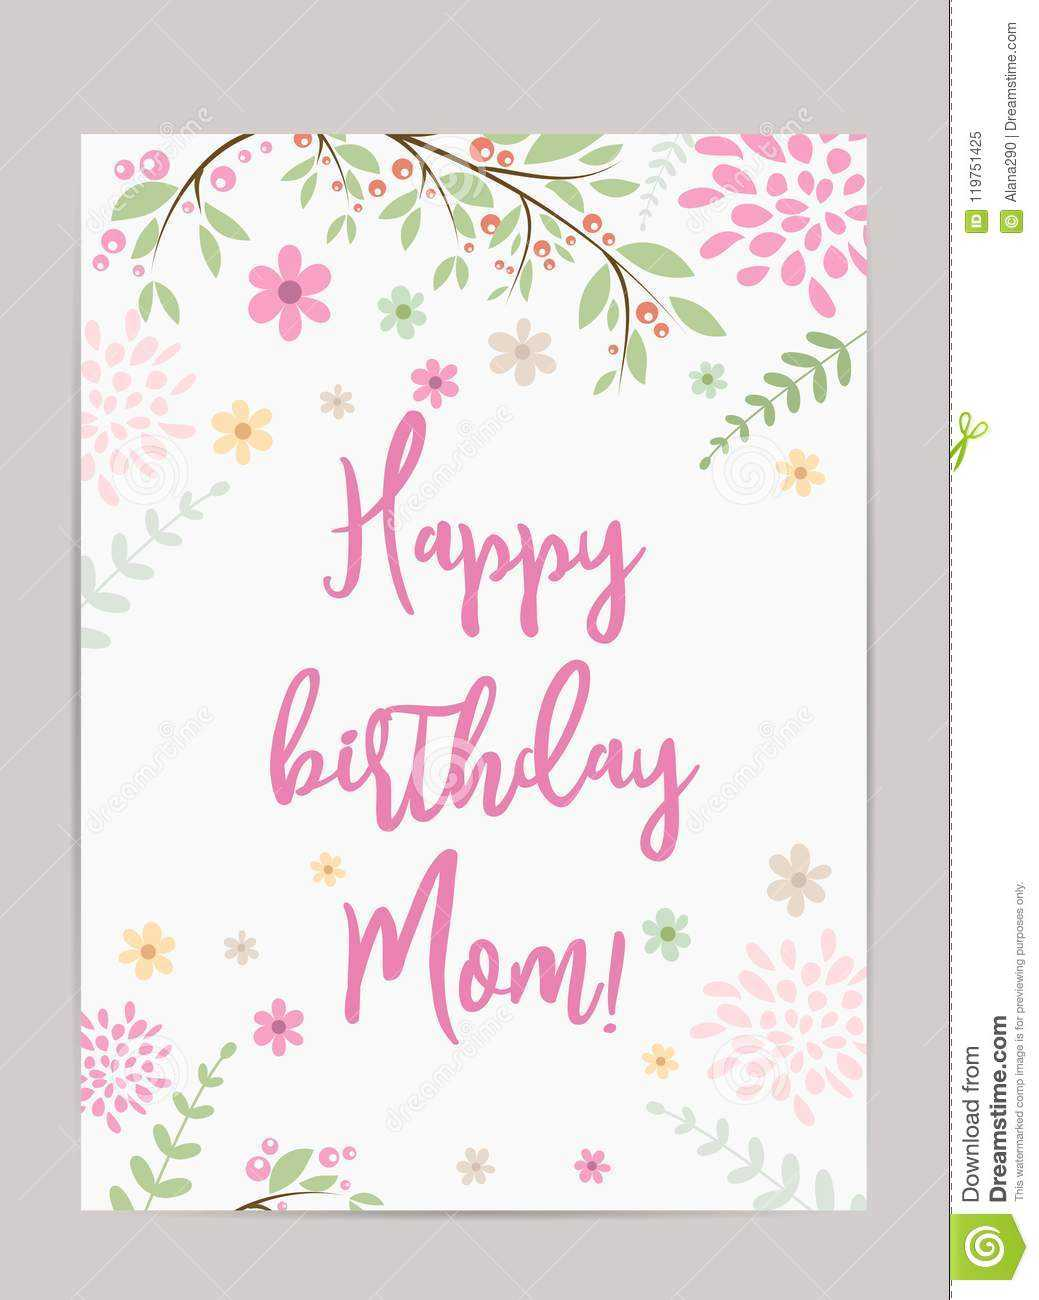 Happy Birthday Mom! Greeting Card Stock Vector intended for Mom Birthday Card Template